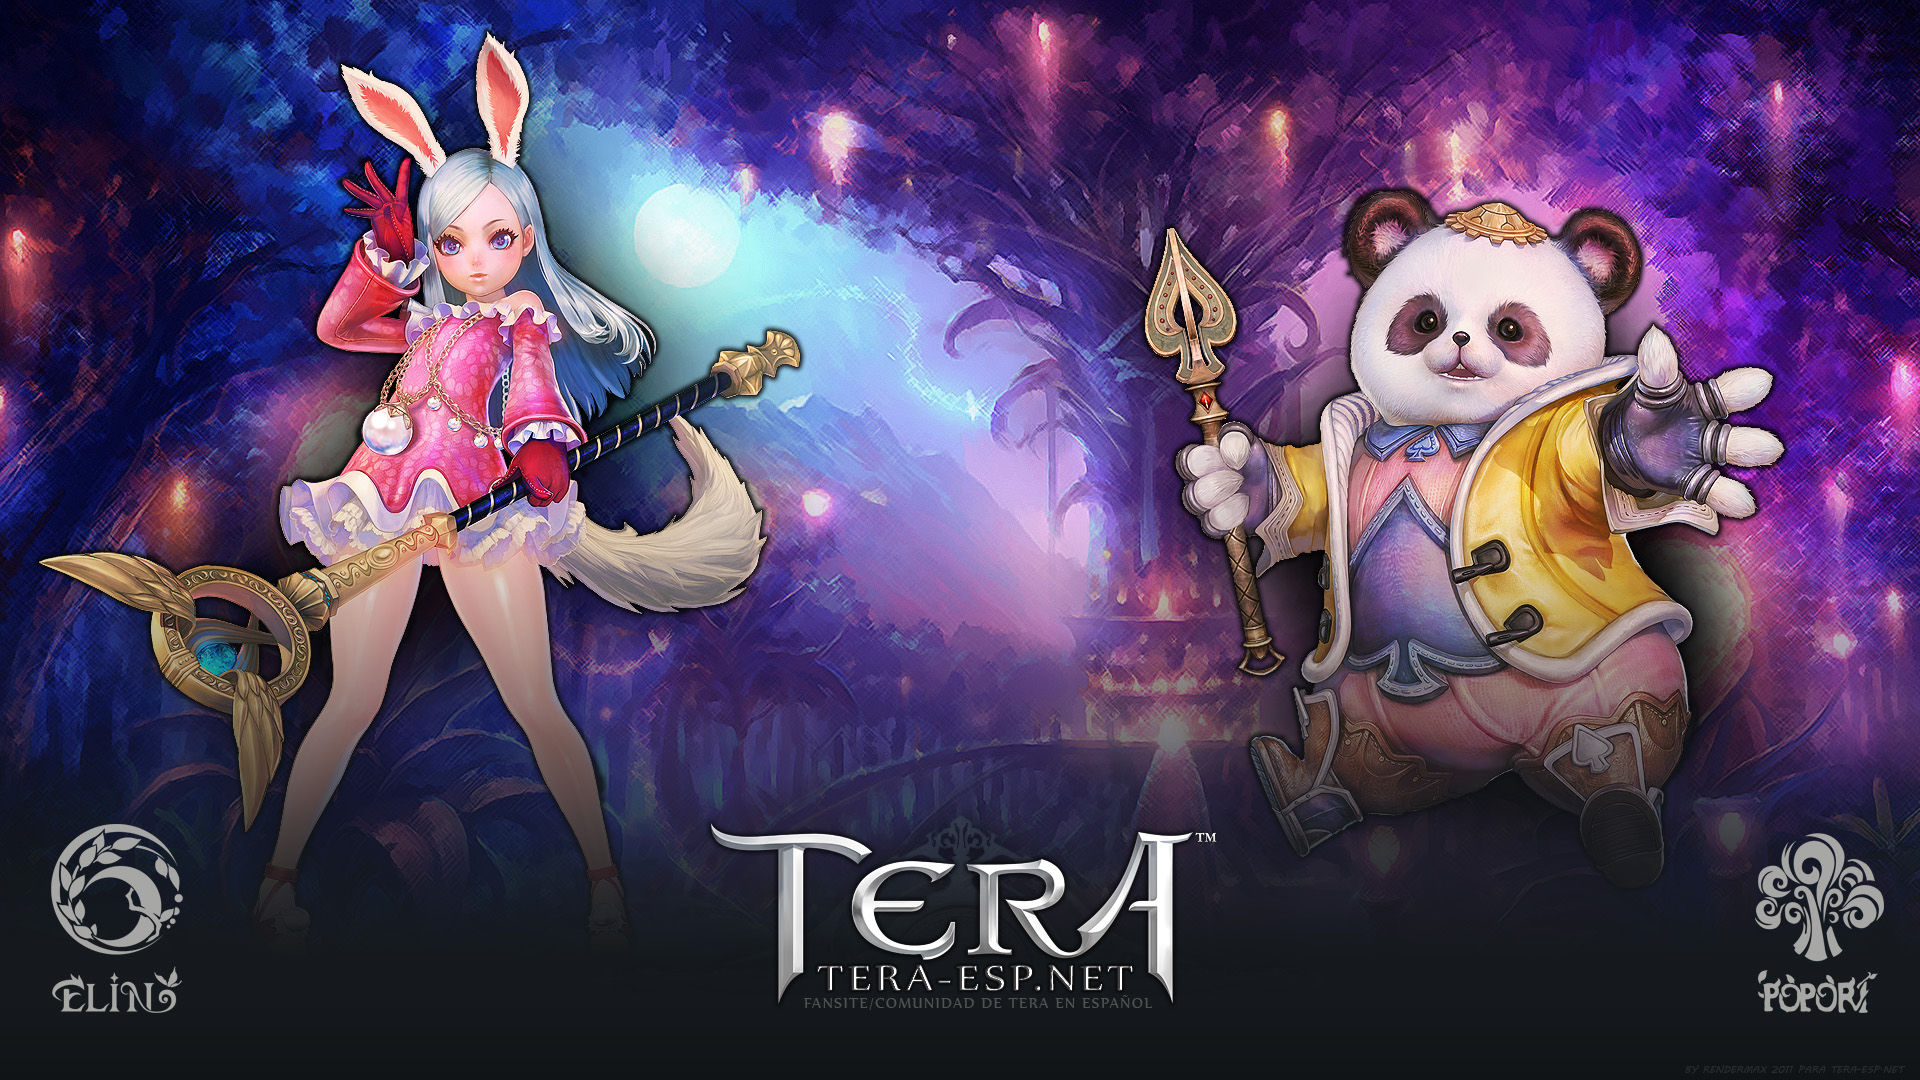 [Image: tera_elin_and_popori_wallpaper_by_rendermax-d3bllso.jpg]